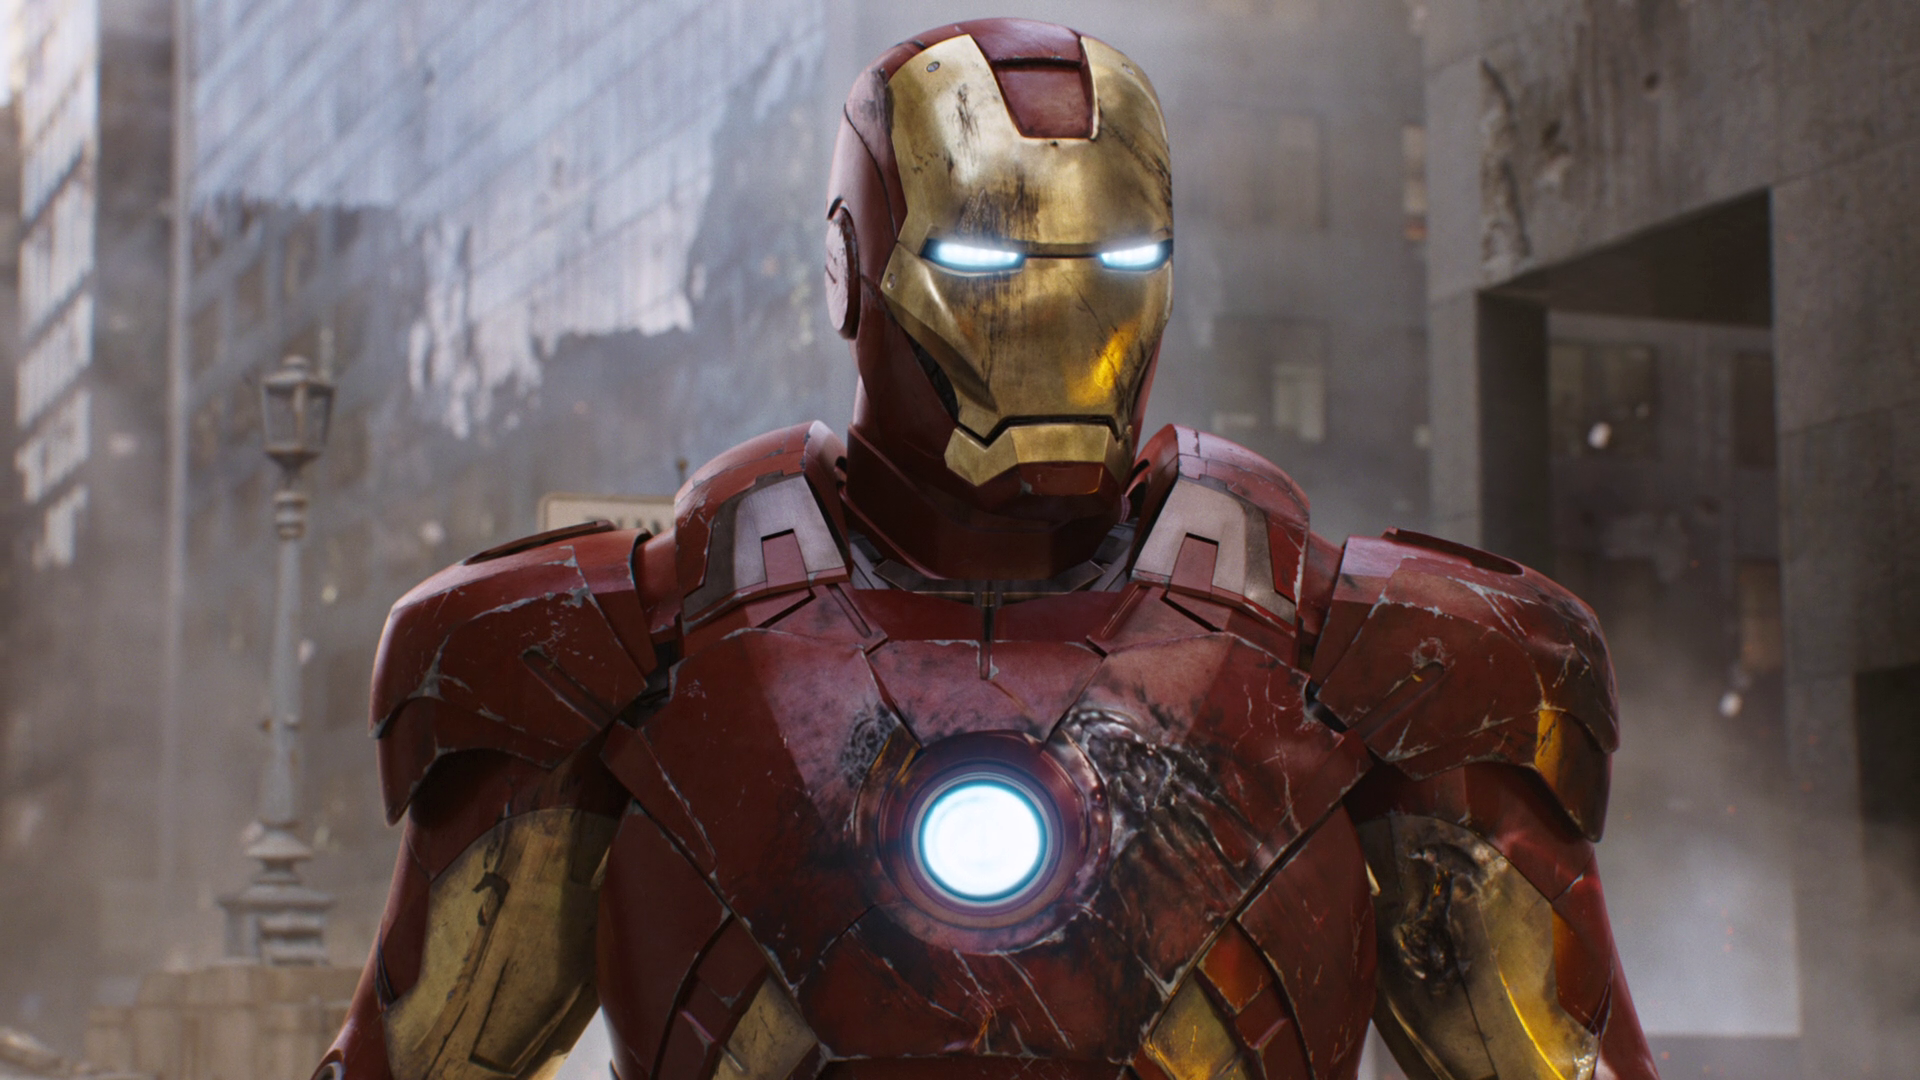 Lane Davies HD Wallpapers Iron Man Armor Mark VII Marvel Cinematic Universe Wiki